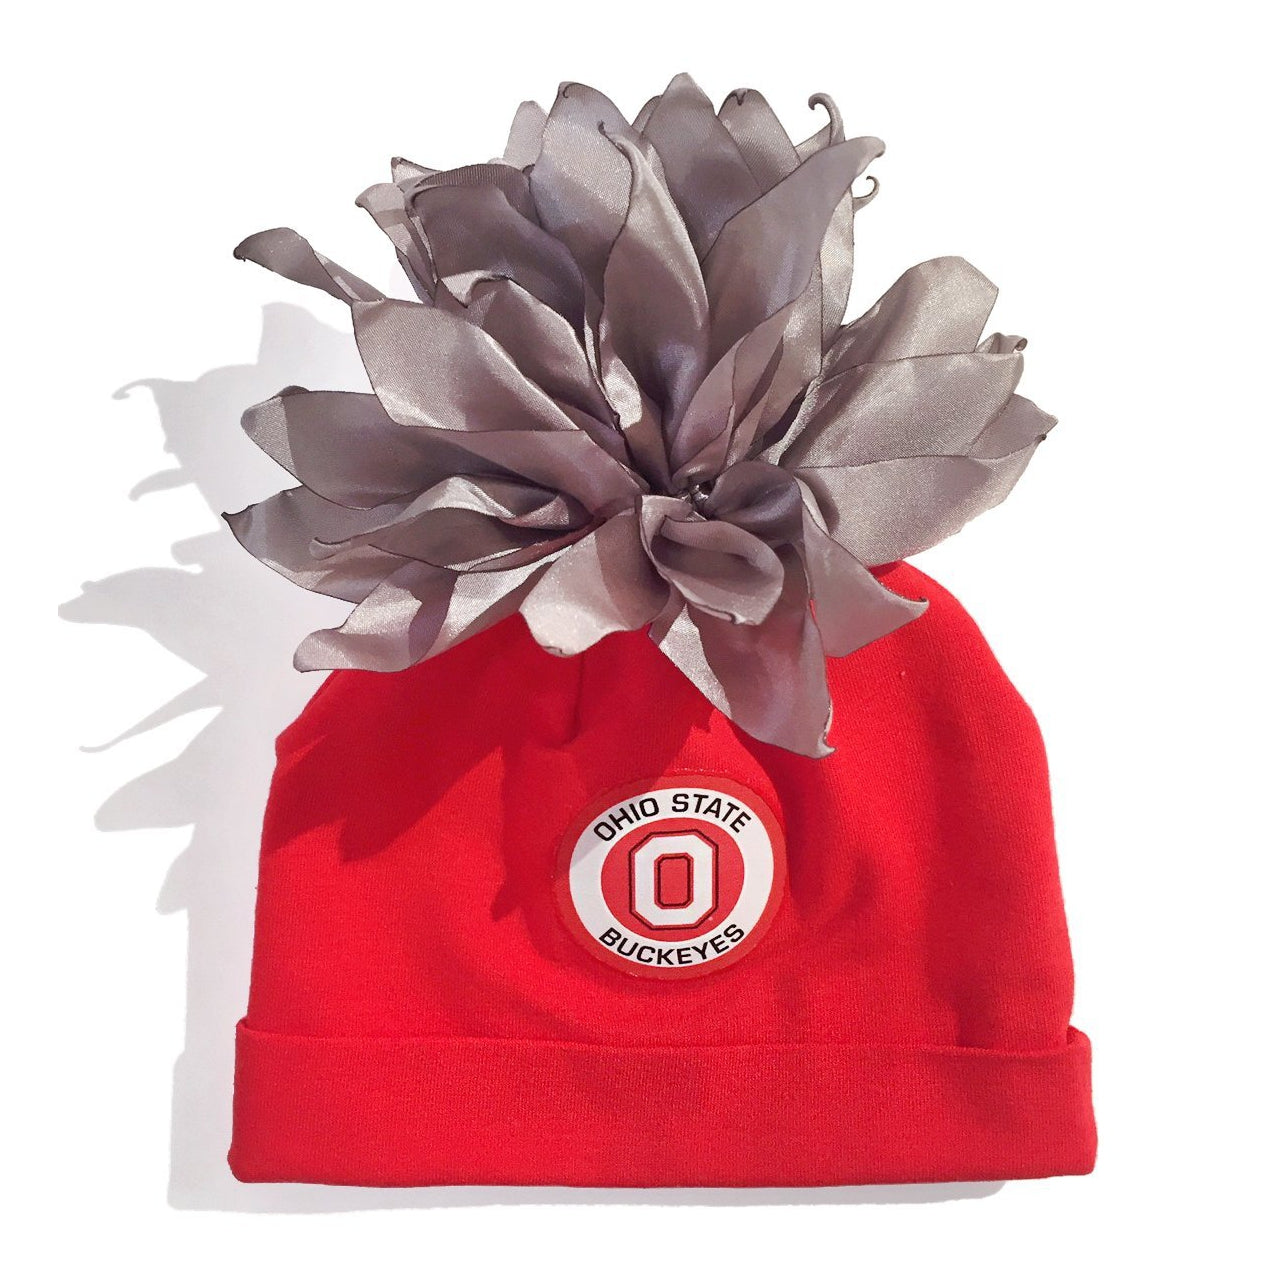 Ohio State University Red Buckeyes Pom-Pom Hat